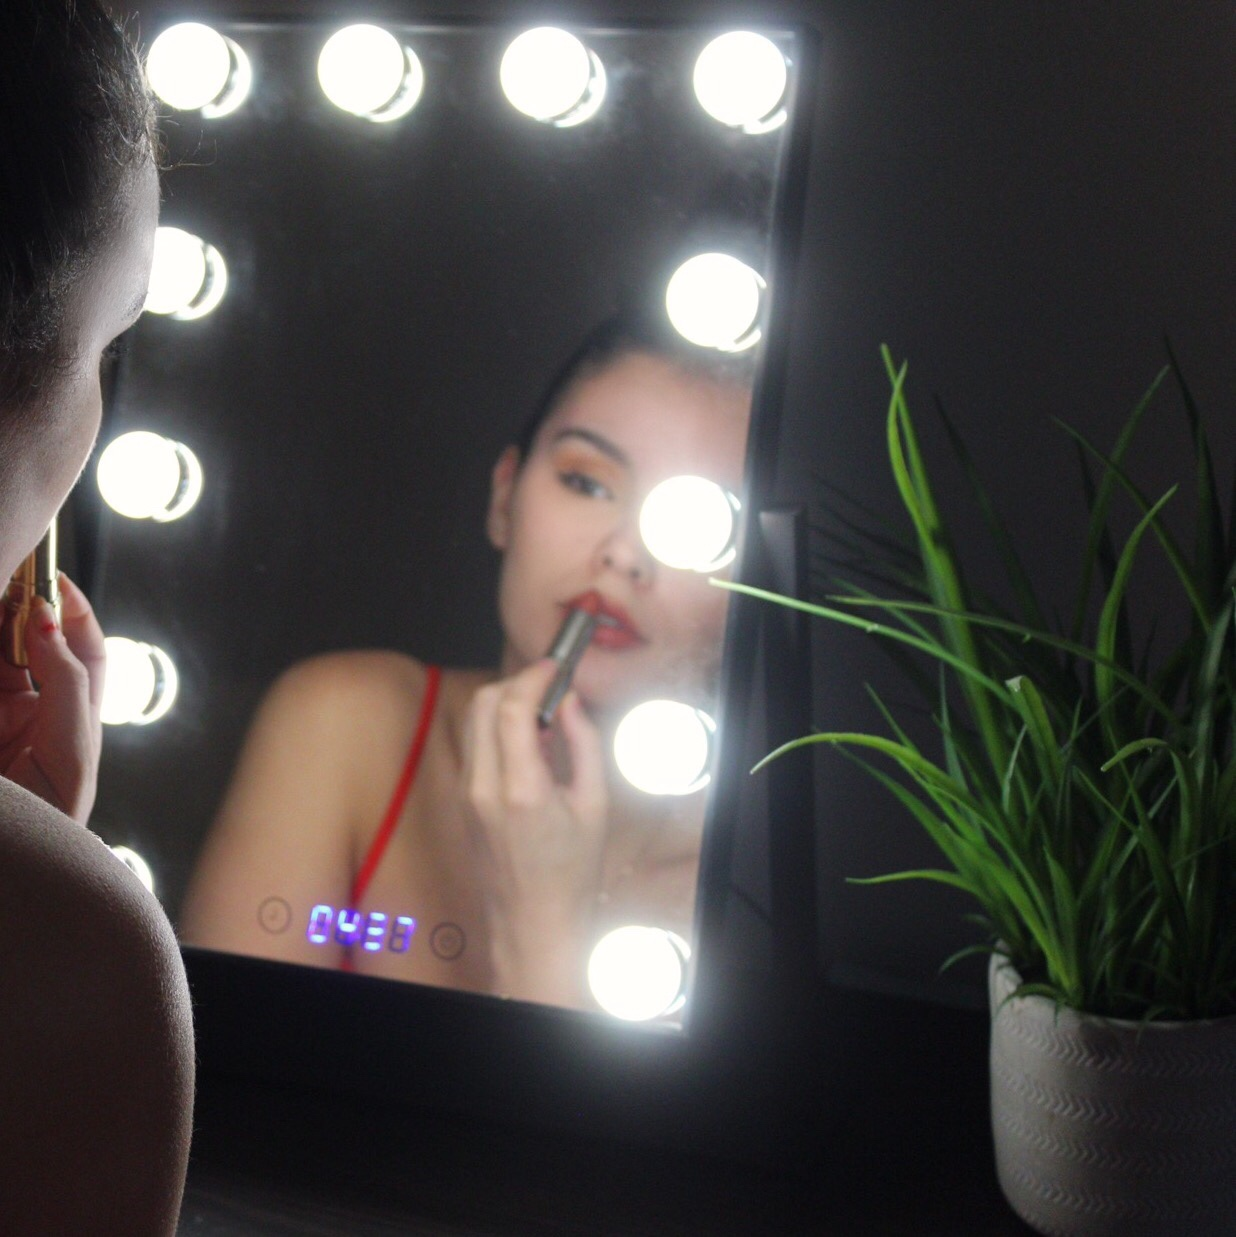 4 Makeup Lighting Tips, Makeup Lighting Tips, lighting applying makeup, vanity mirror, estala, estala skin care, estala mirror, Hollywood vanity mirror, lighted mirror